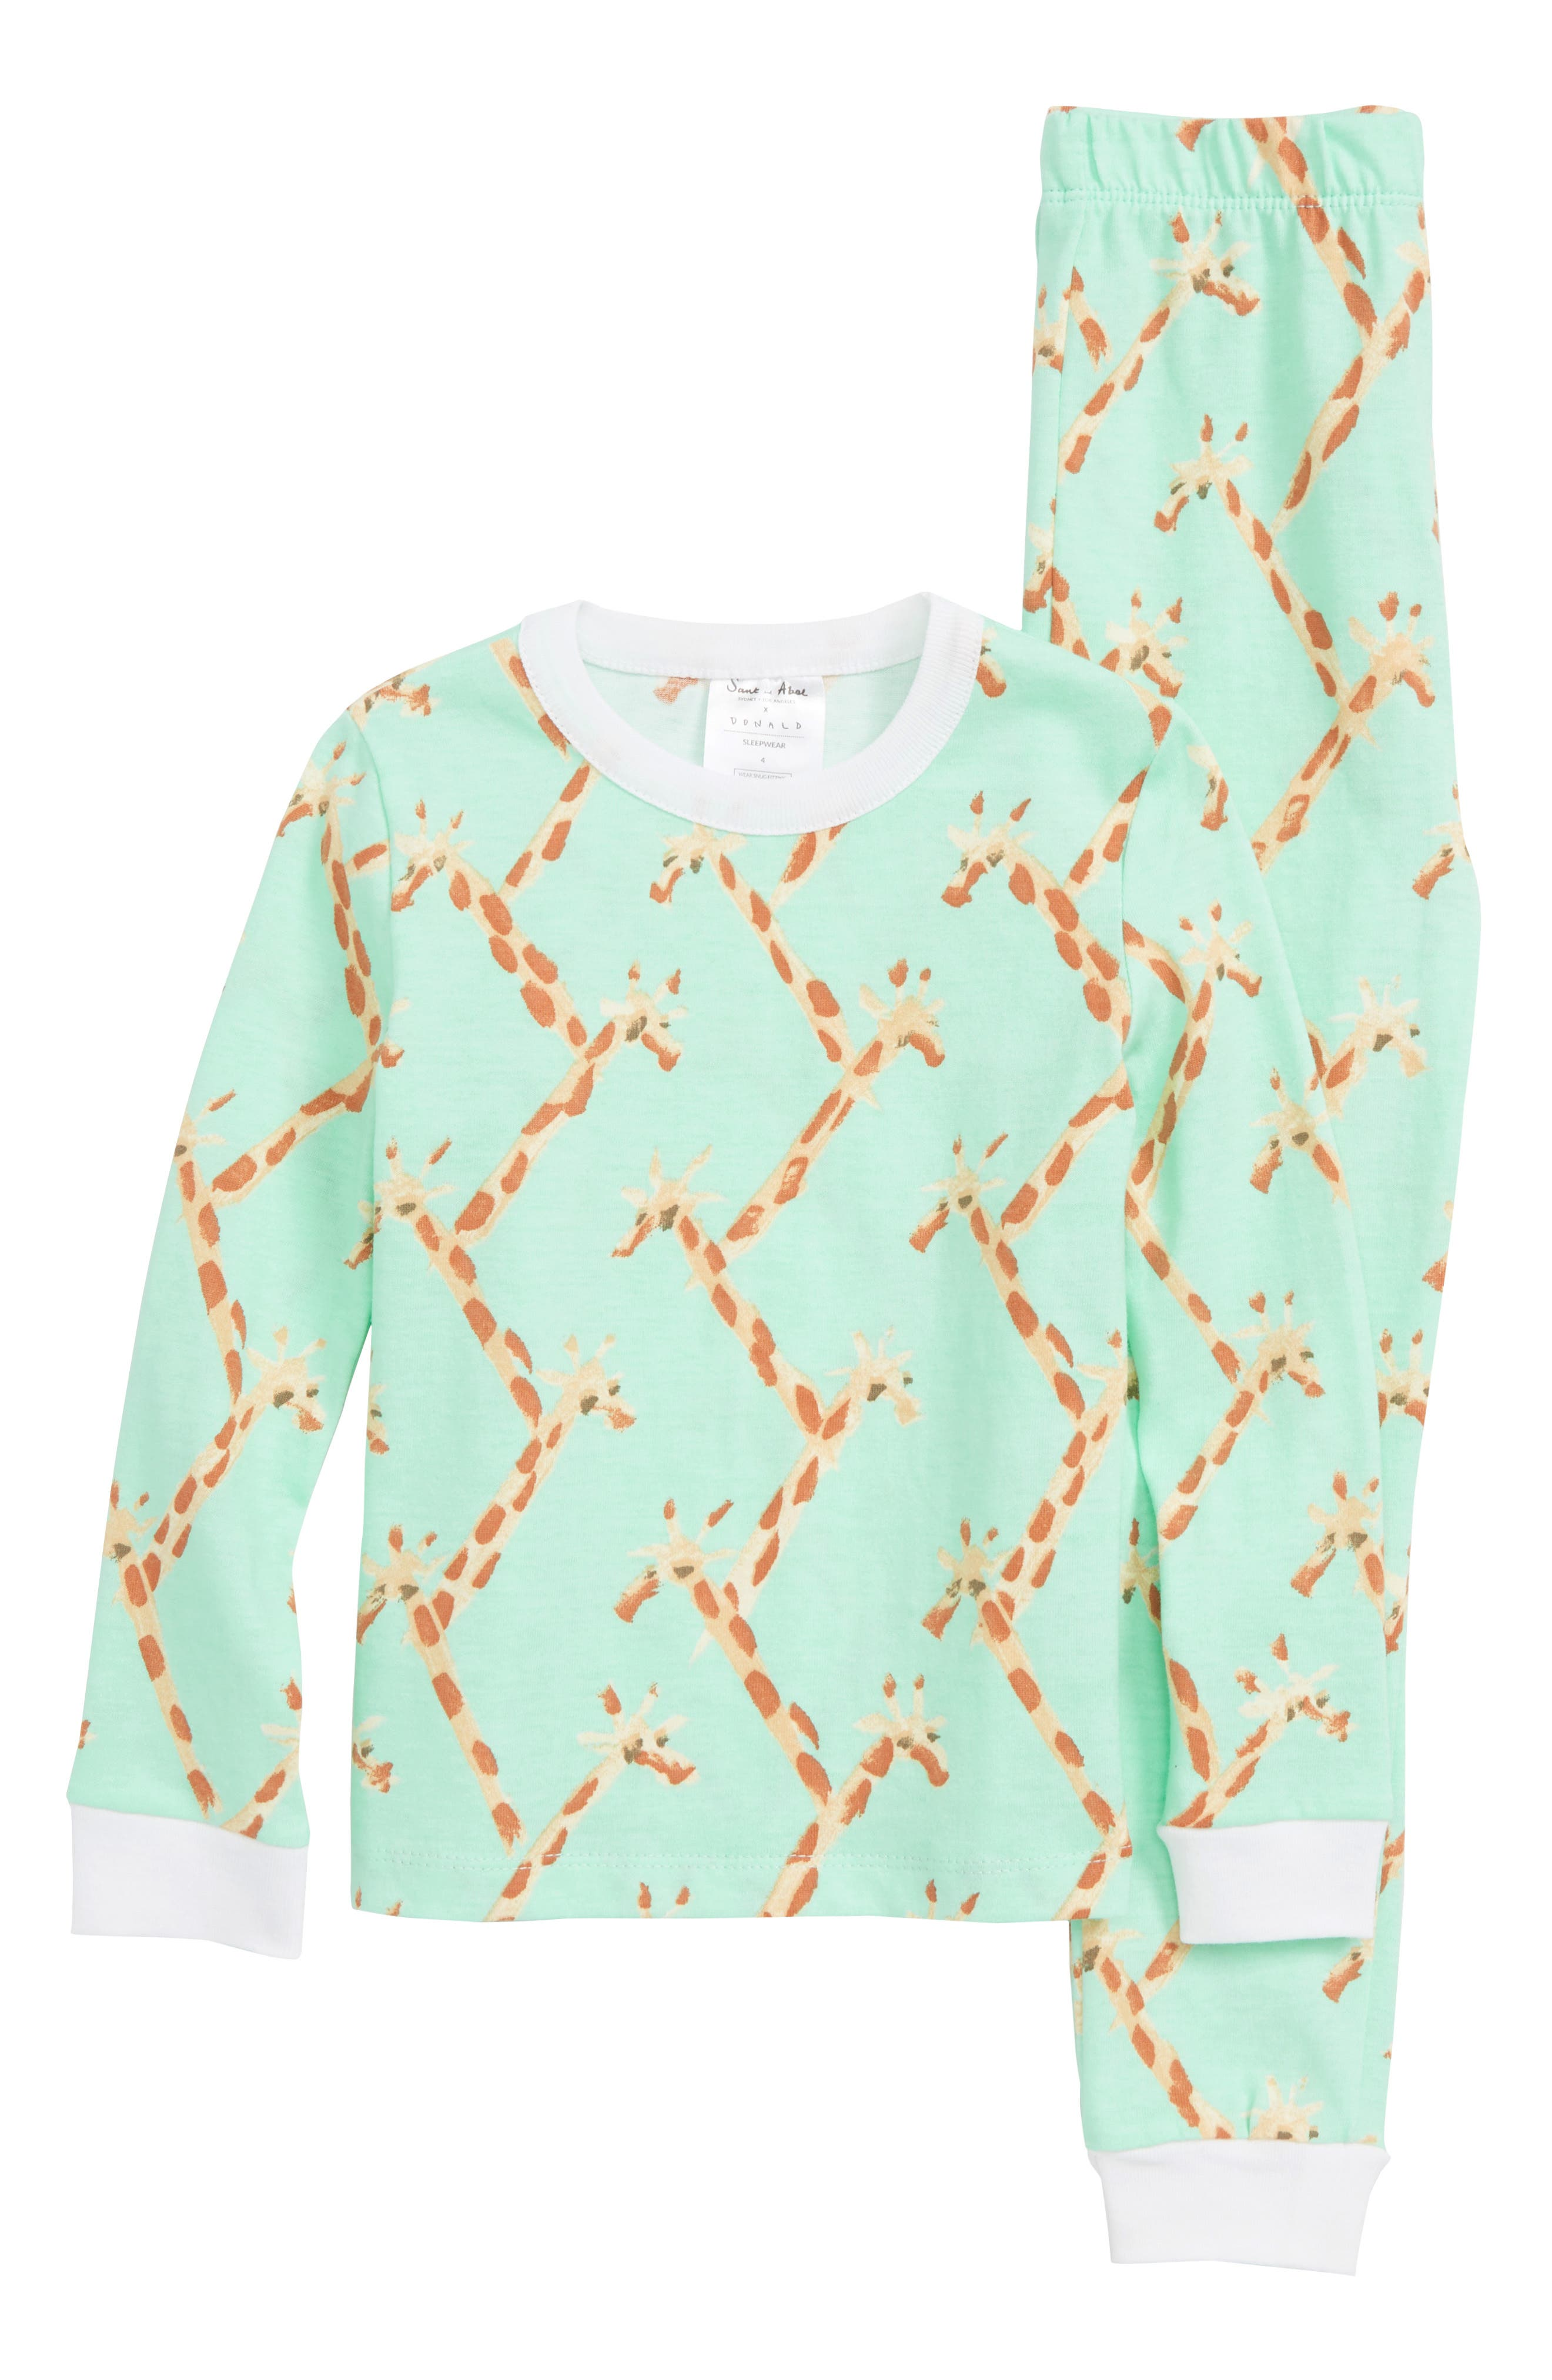 x Donald Robertson Giraffe Fitted Two-Piece Pajamas,                             Main thumbnail 1, color,                             300